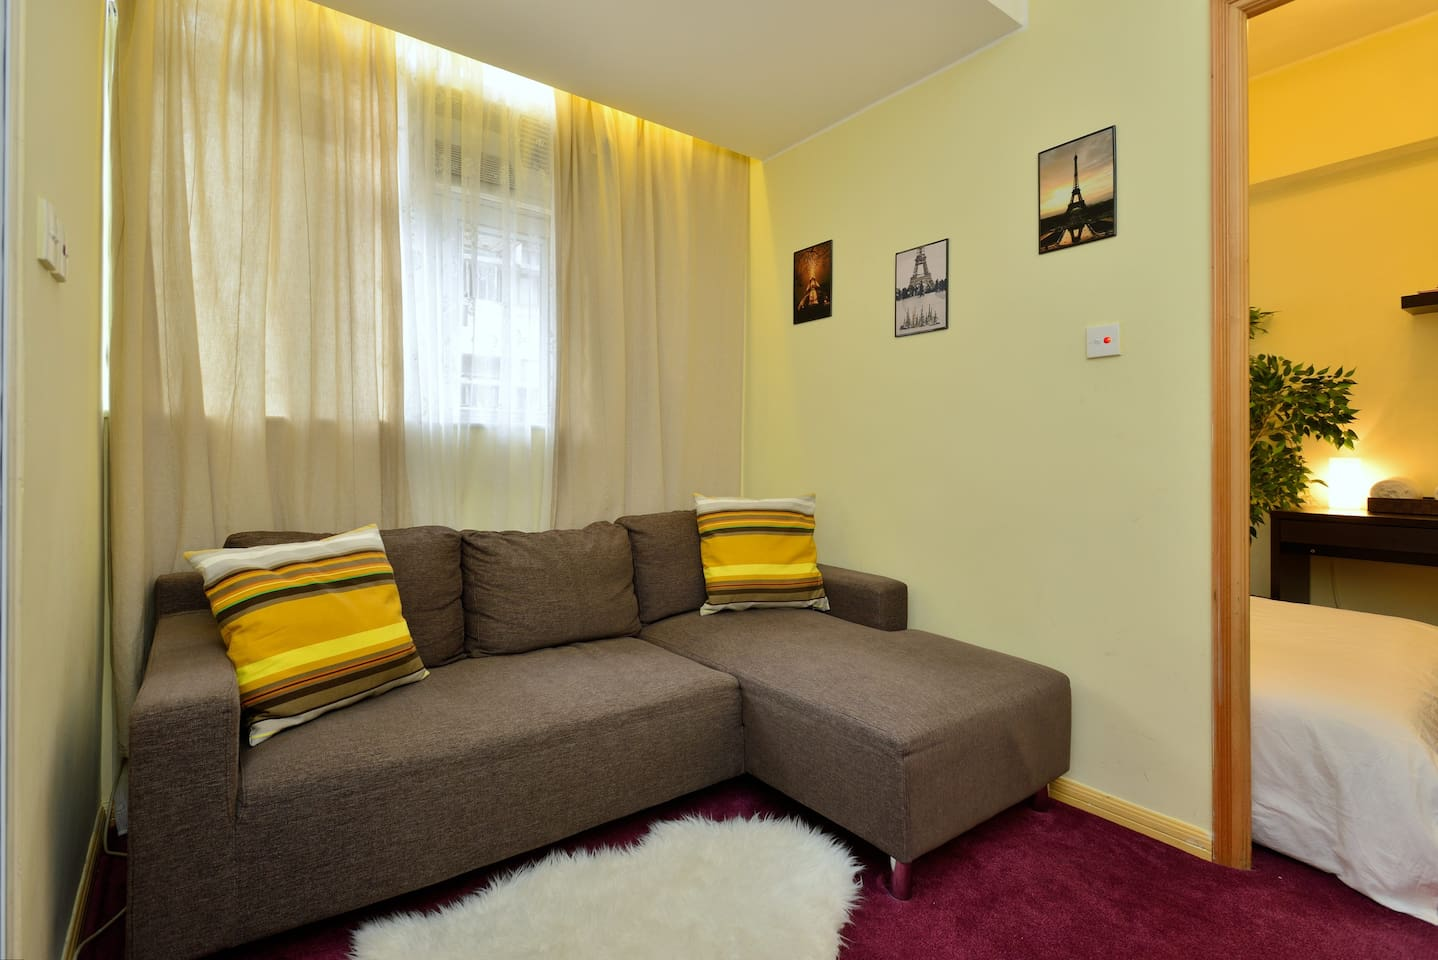 Very cozy and spacious Apartment for a wonderful stay, plenty of sun lights everywhere